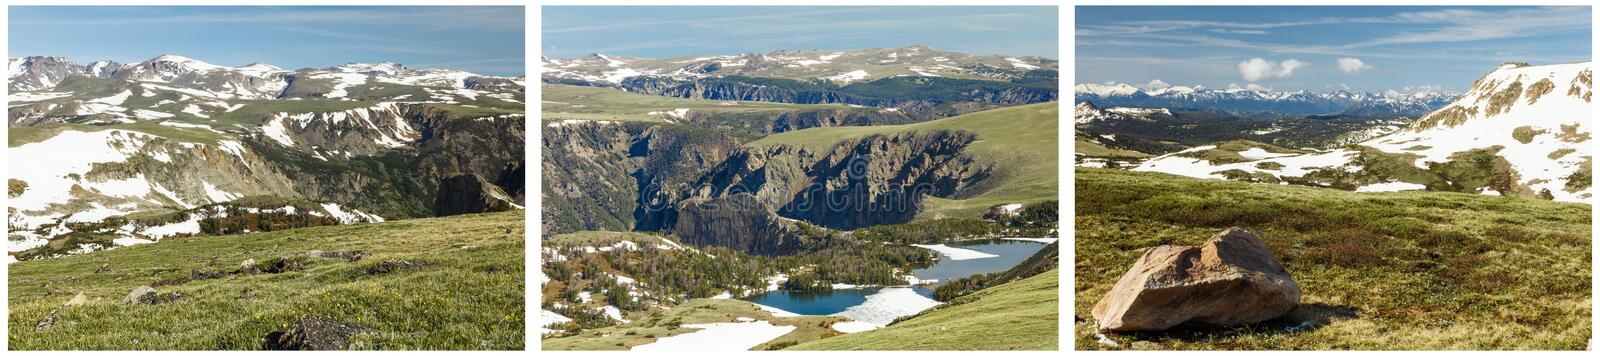 Alpine tundra beartooths lake collage stock images